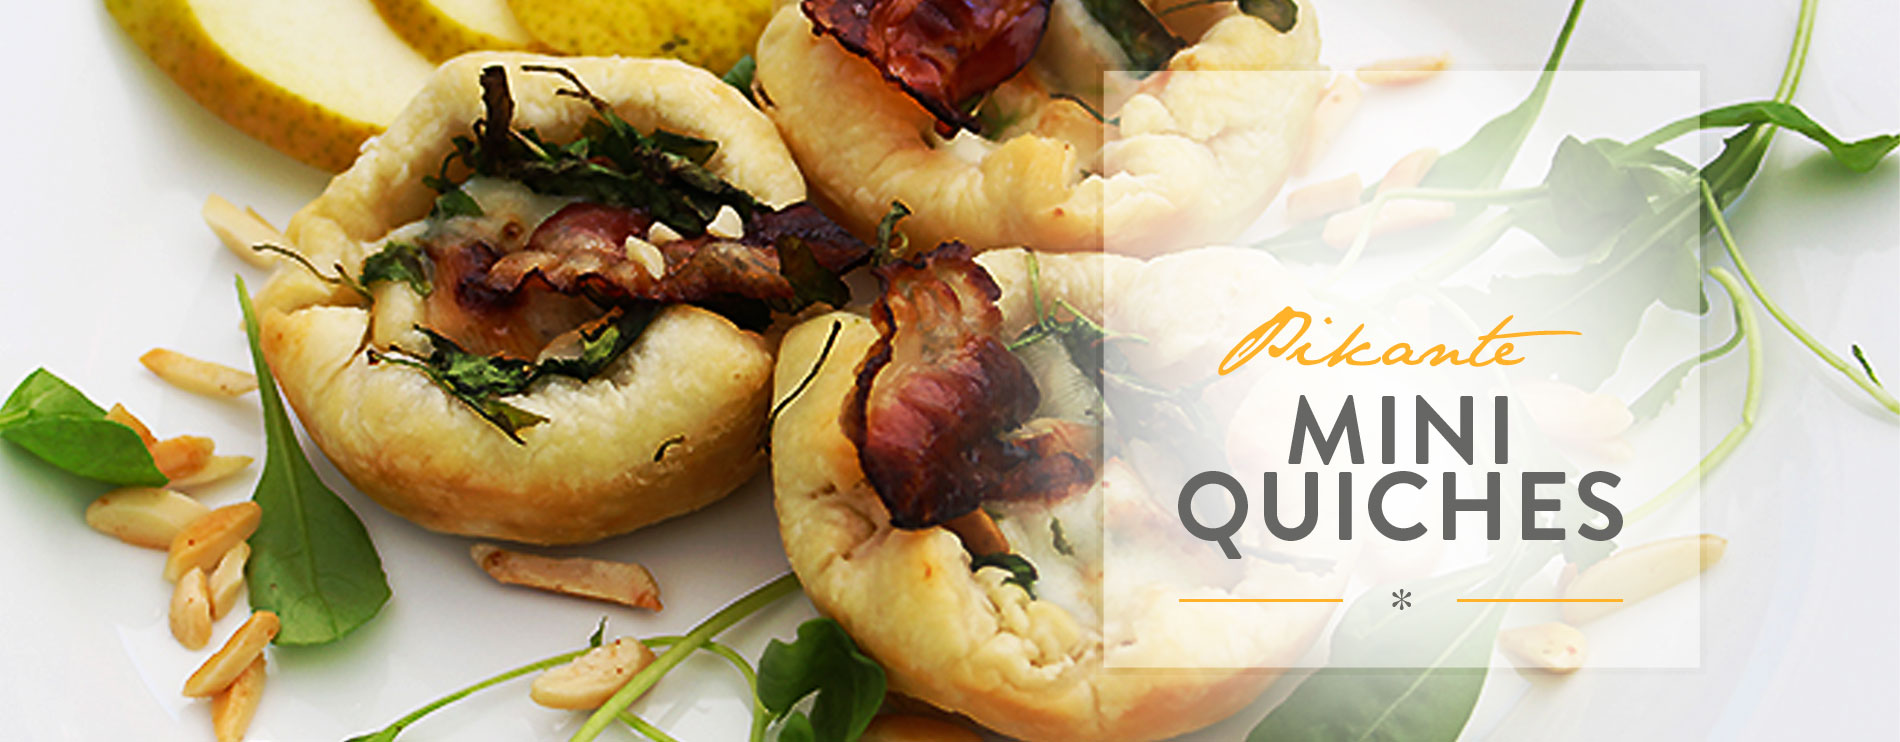 Header Pikante Mini Quiches